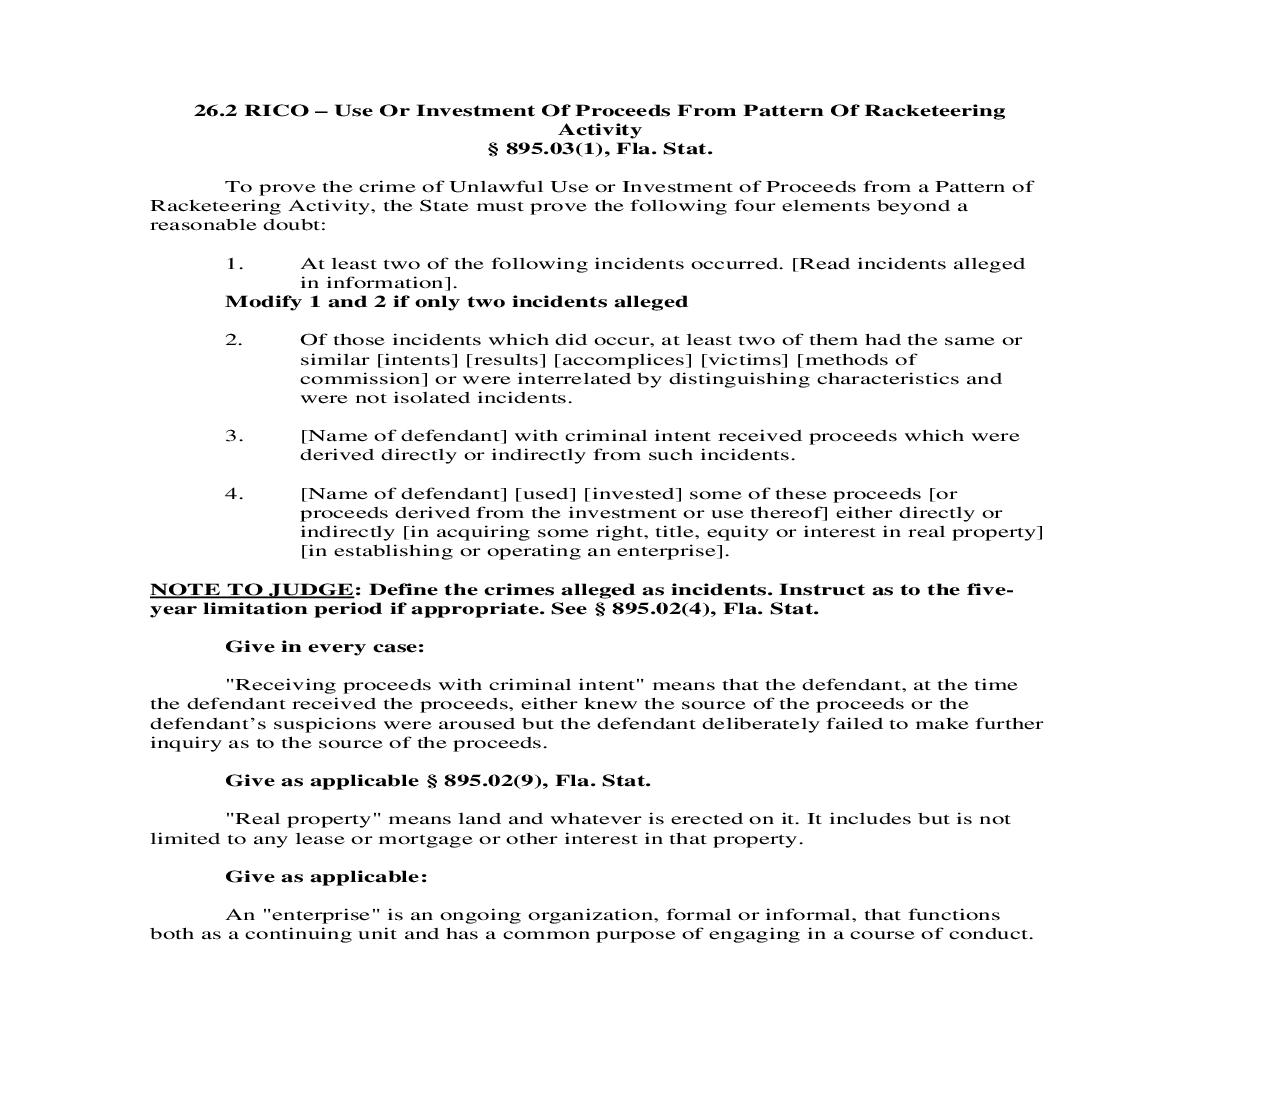 26.2. RICO - Use Or Investment Of Proceeds From Pattern Of Racketeering Activity | Pdf Doc Docx | Florida_JI